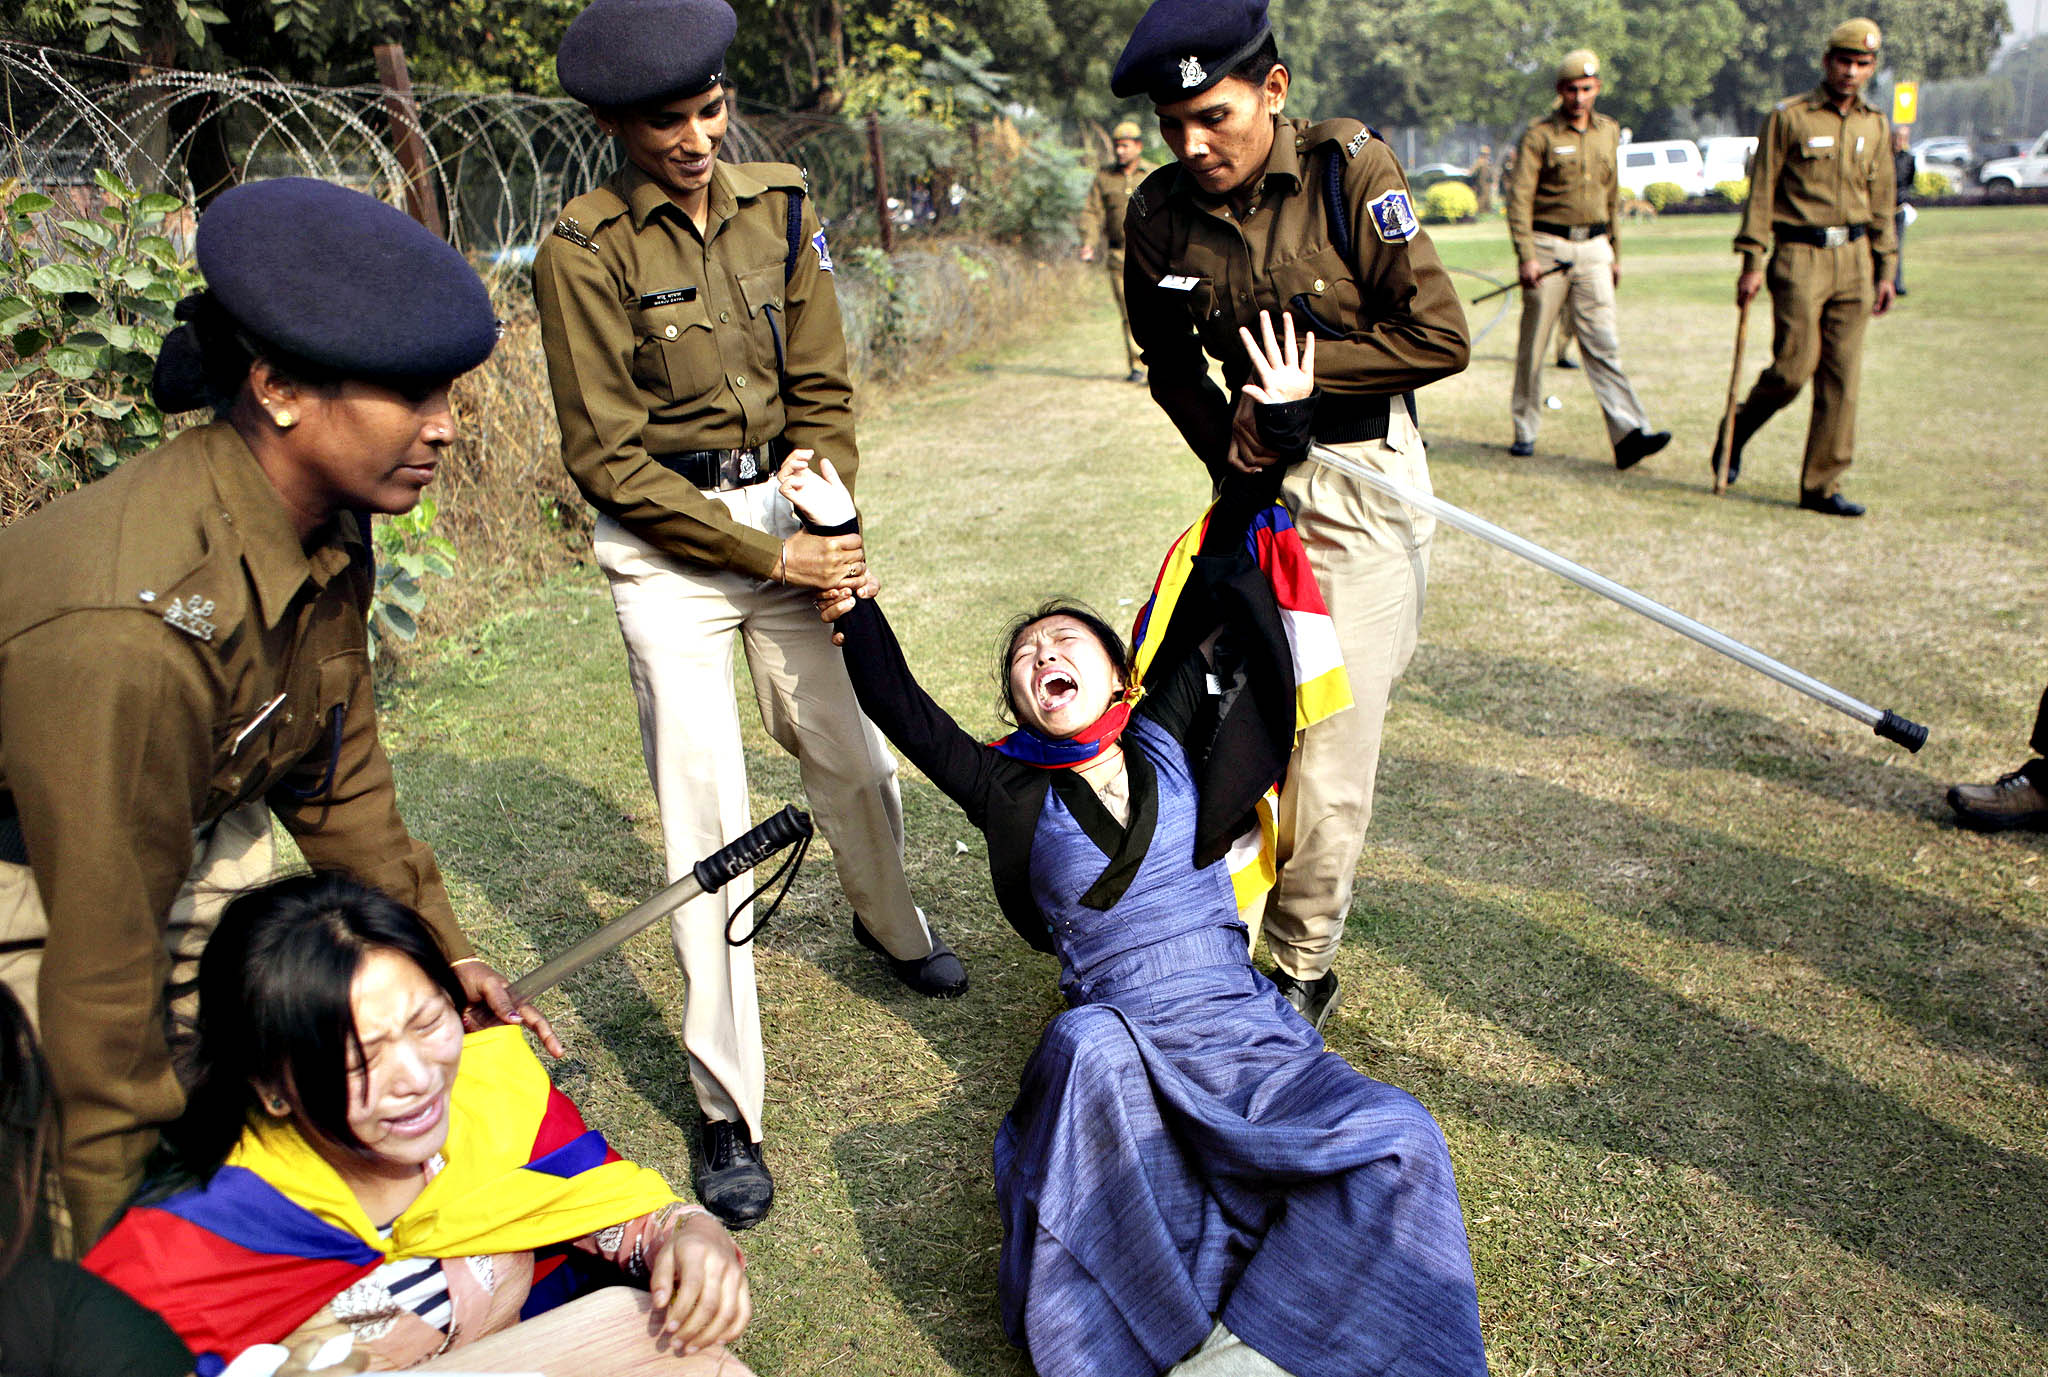 Tibetan exiles are taken in to detain by Indian policewomen during a protest against the alleged human rights abuses of Tibetans by the Chinese government outside the Chinese embassy on the eve of World Human Rights Day in New Delhi, India, Monday, Dec. 9, 2013. Tibetans also mark Dec. 10 as the Nobel peace Prize Day, the day their spiritual leader the Dalai Lama received the Nobel peace Prize in 1989.